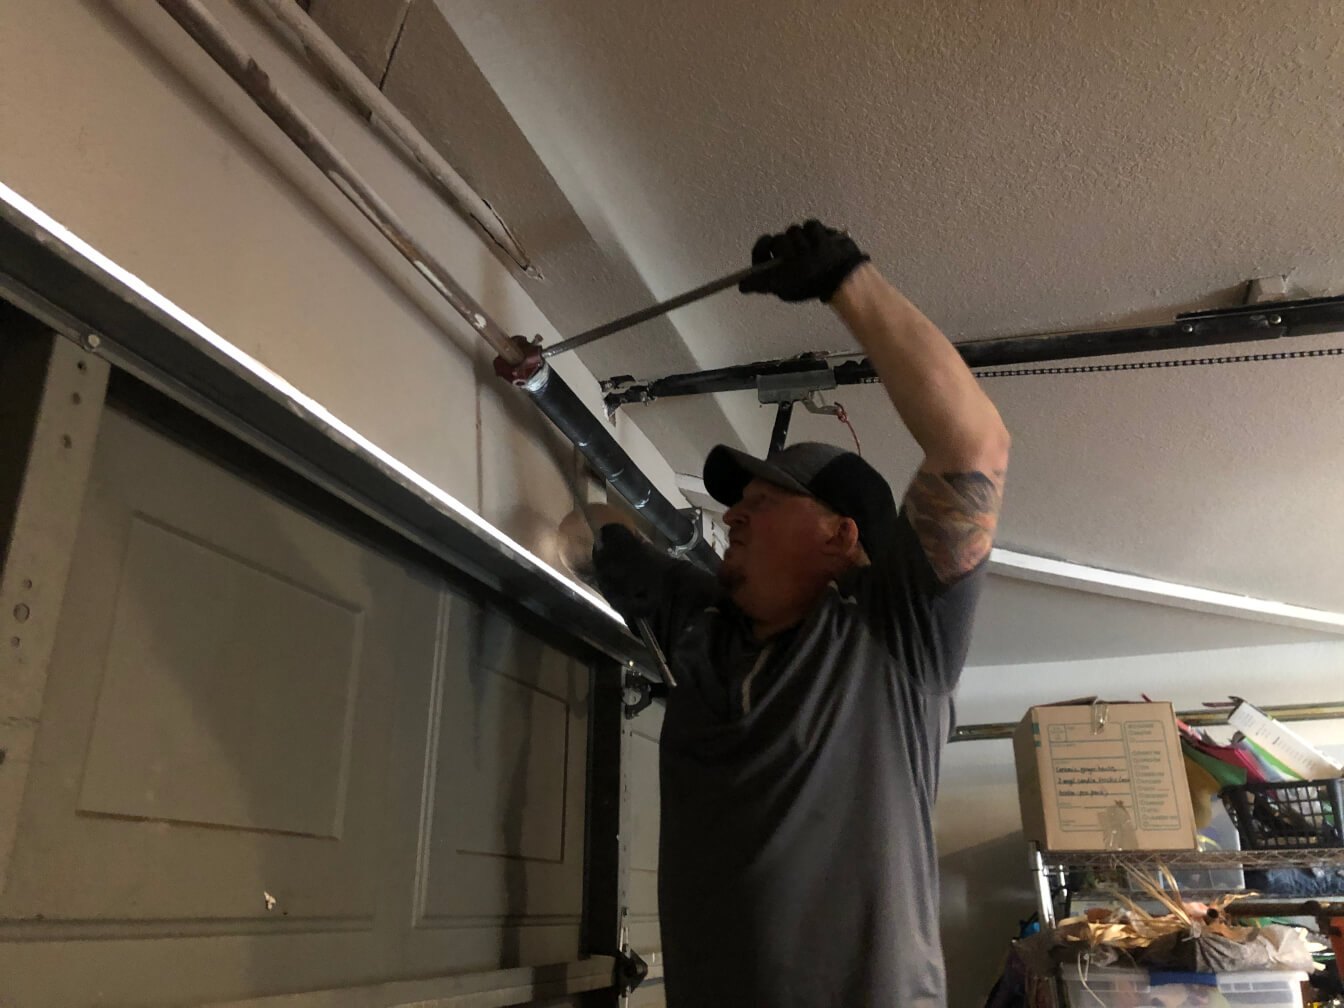 Image of a service technician installing a new garage spring.